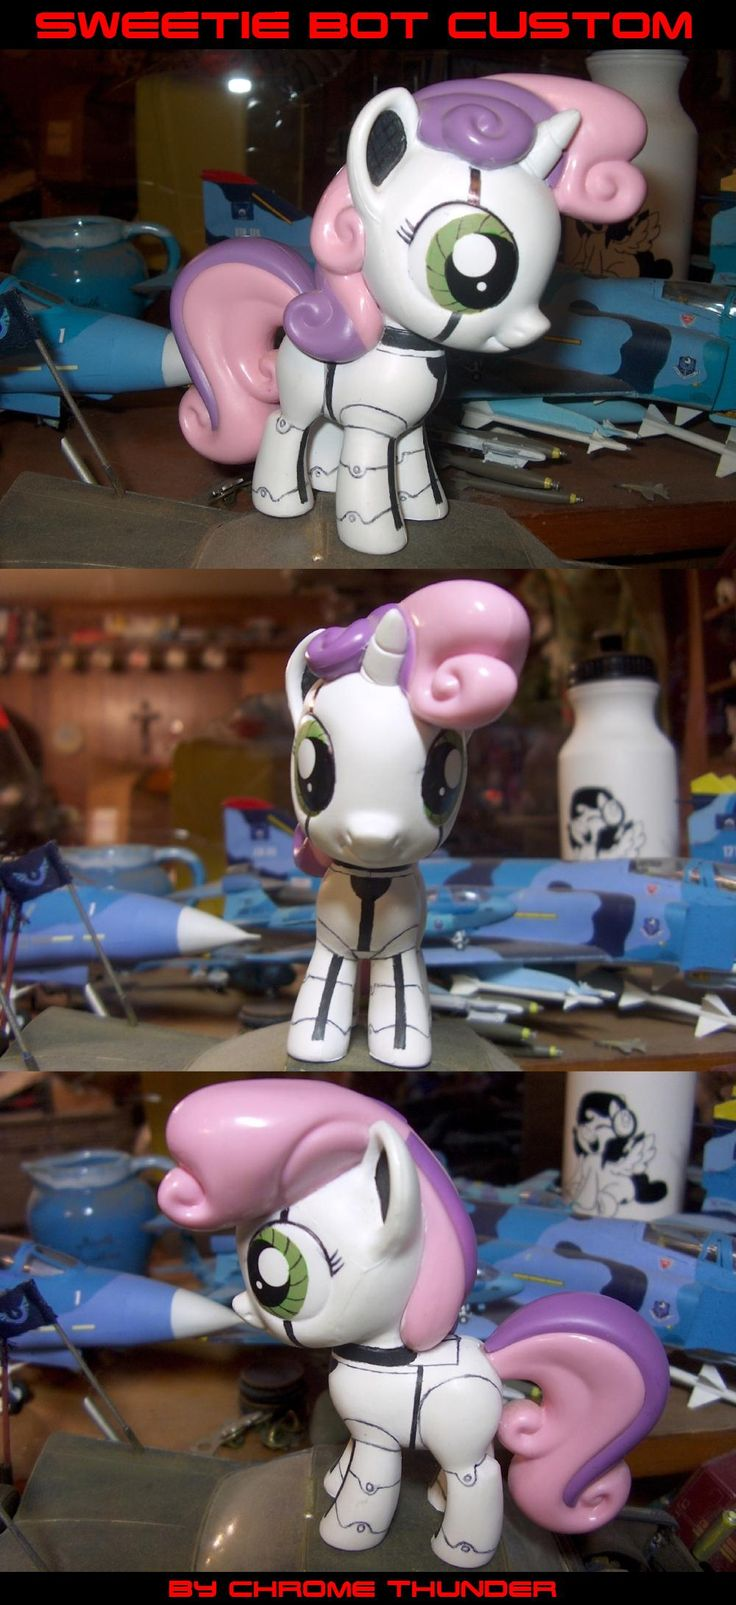 Lighting dust exe has stopped working my little pony friendship is - I First Started This Custom When Funko Released The Large Cmc Figures I Bought A Sweetie Belle To Make A Sweetie Bot Repaint